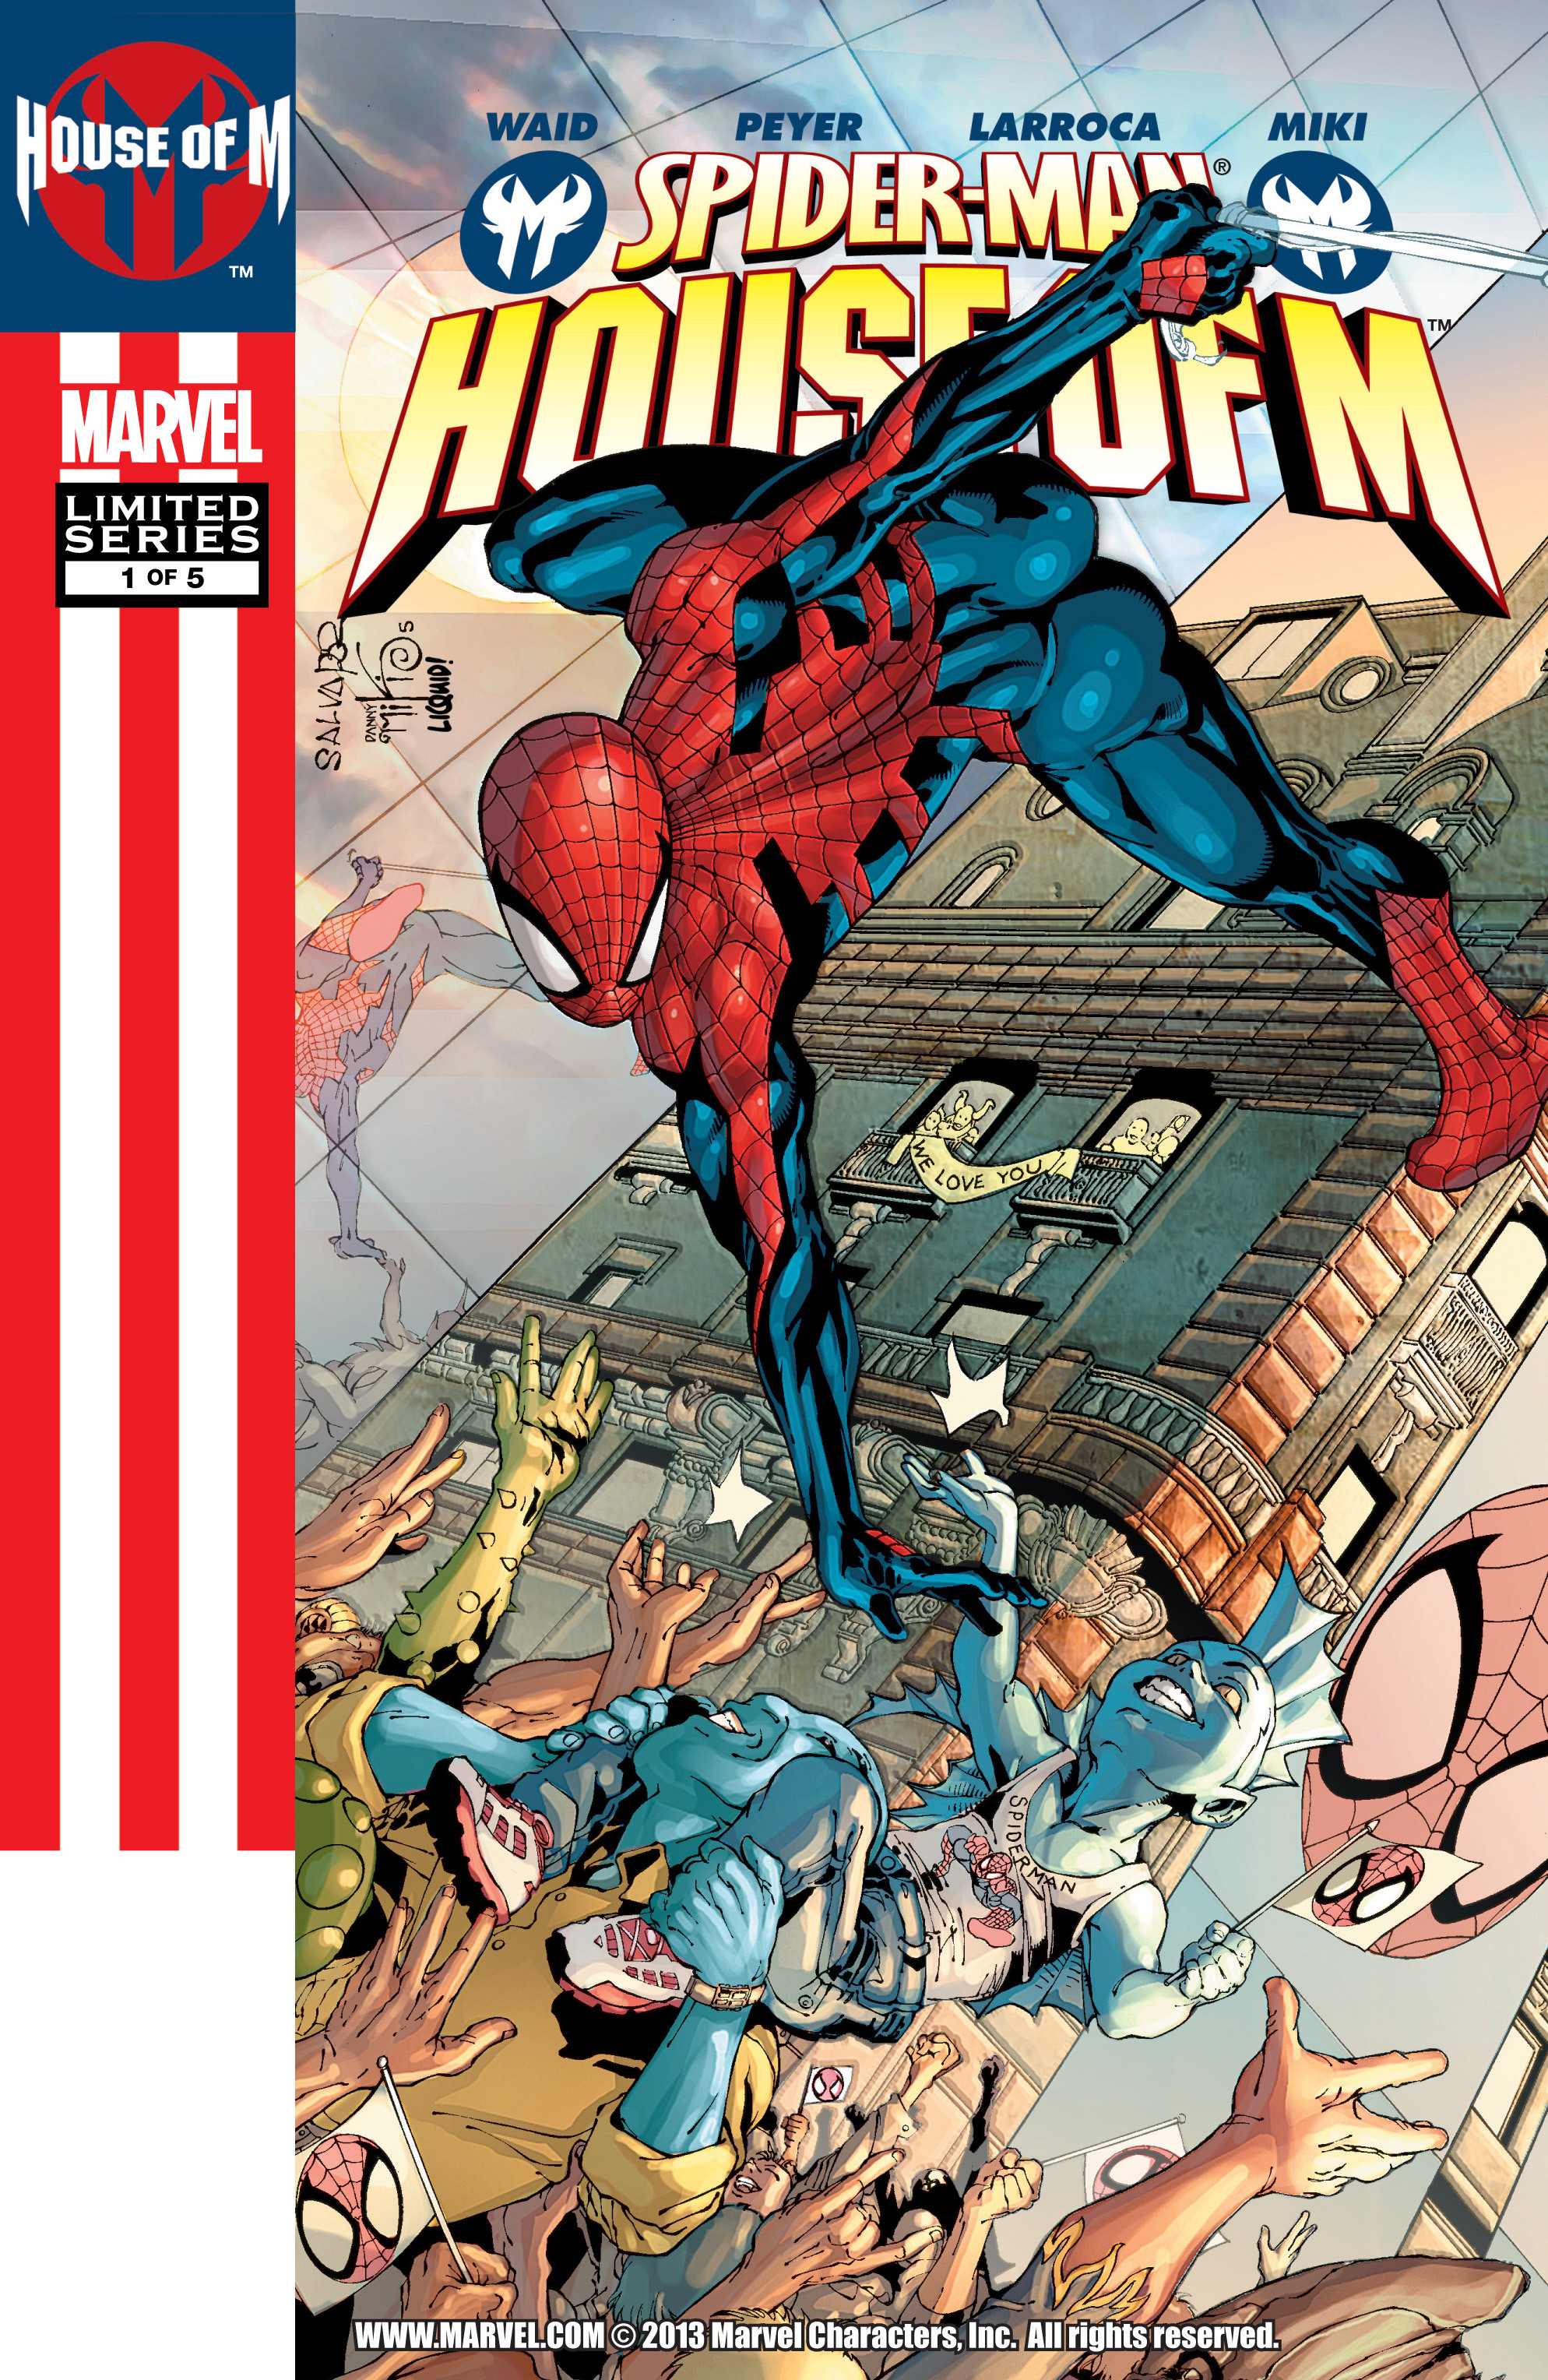 Spider-Man: House of M